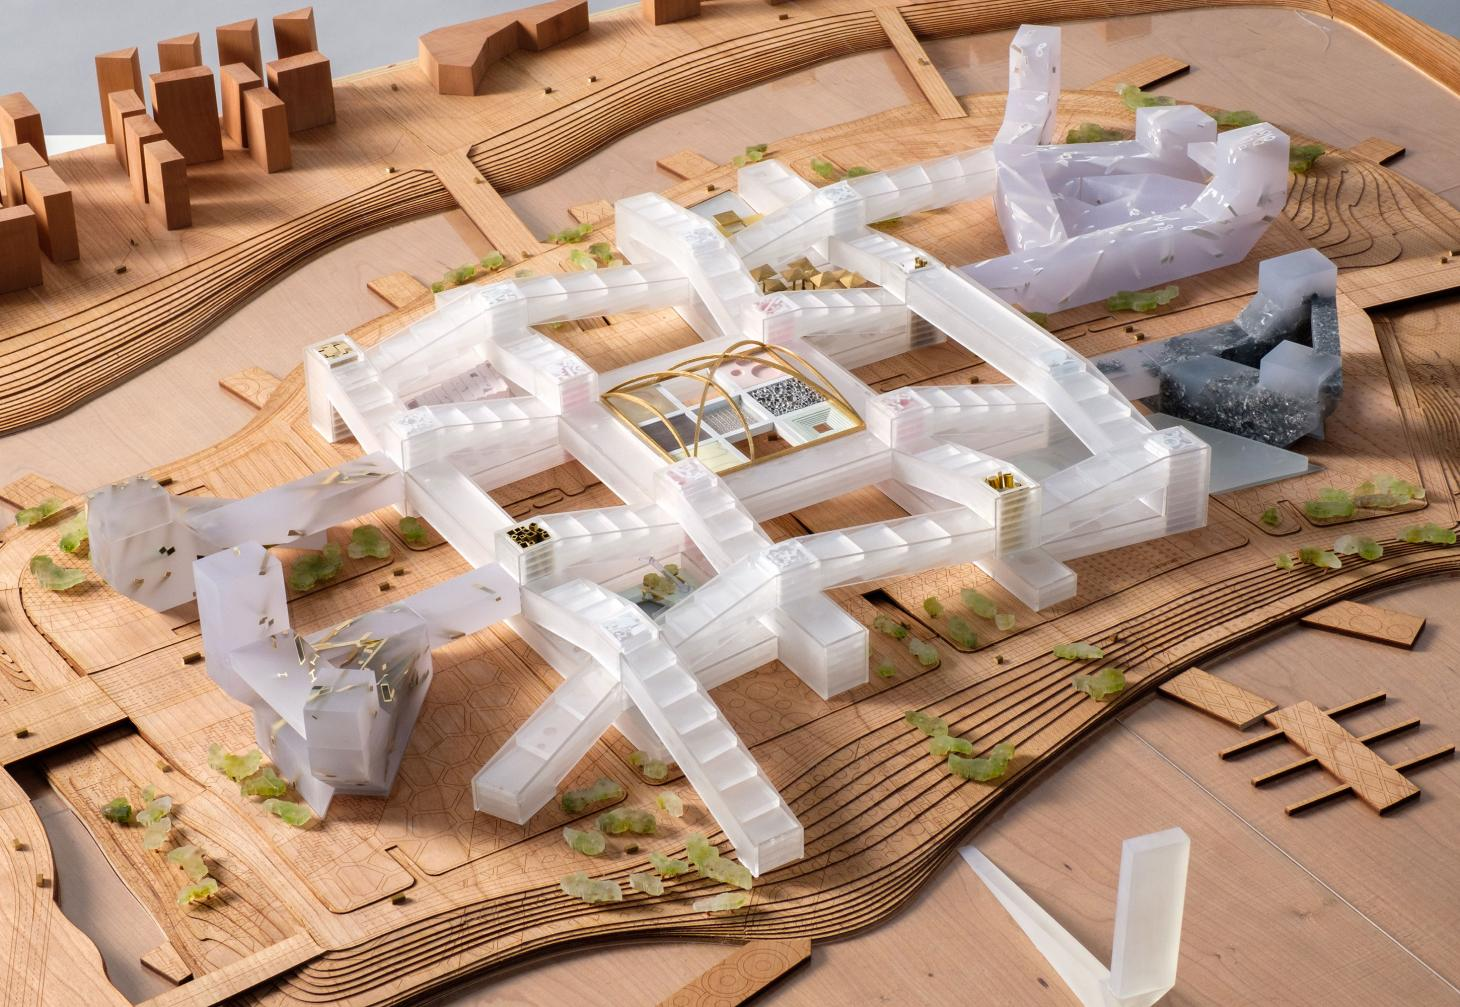 An architectural model of a building complex